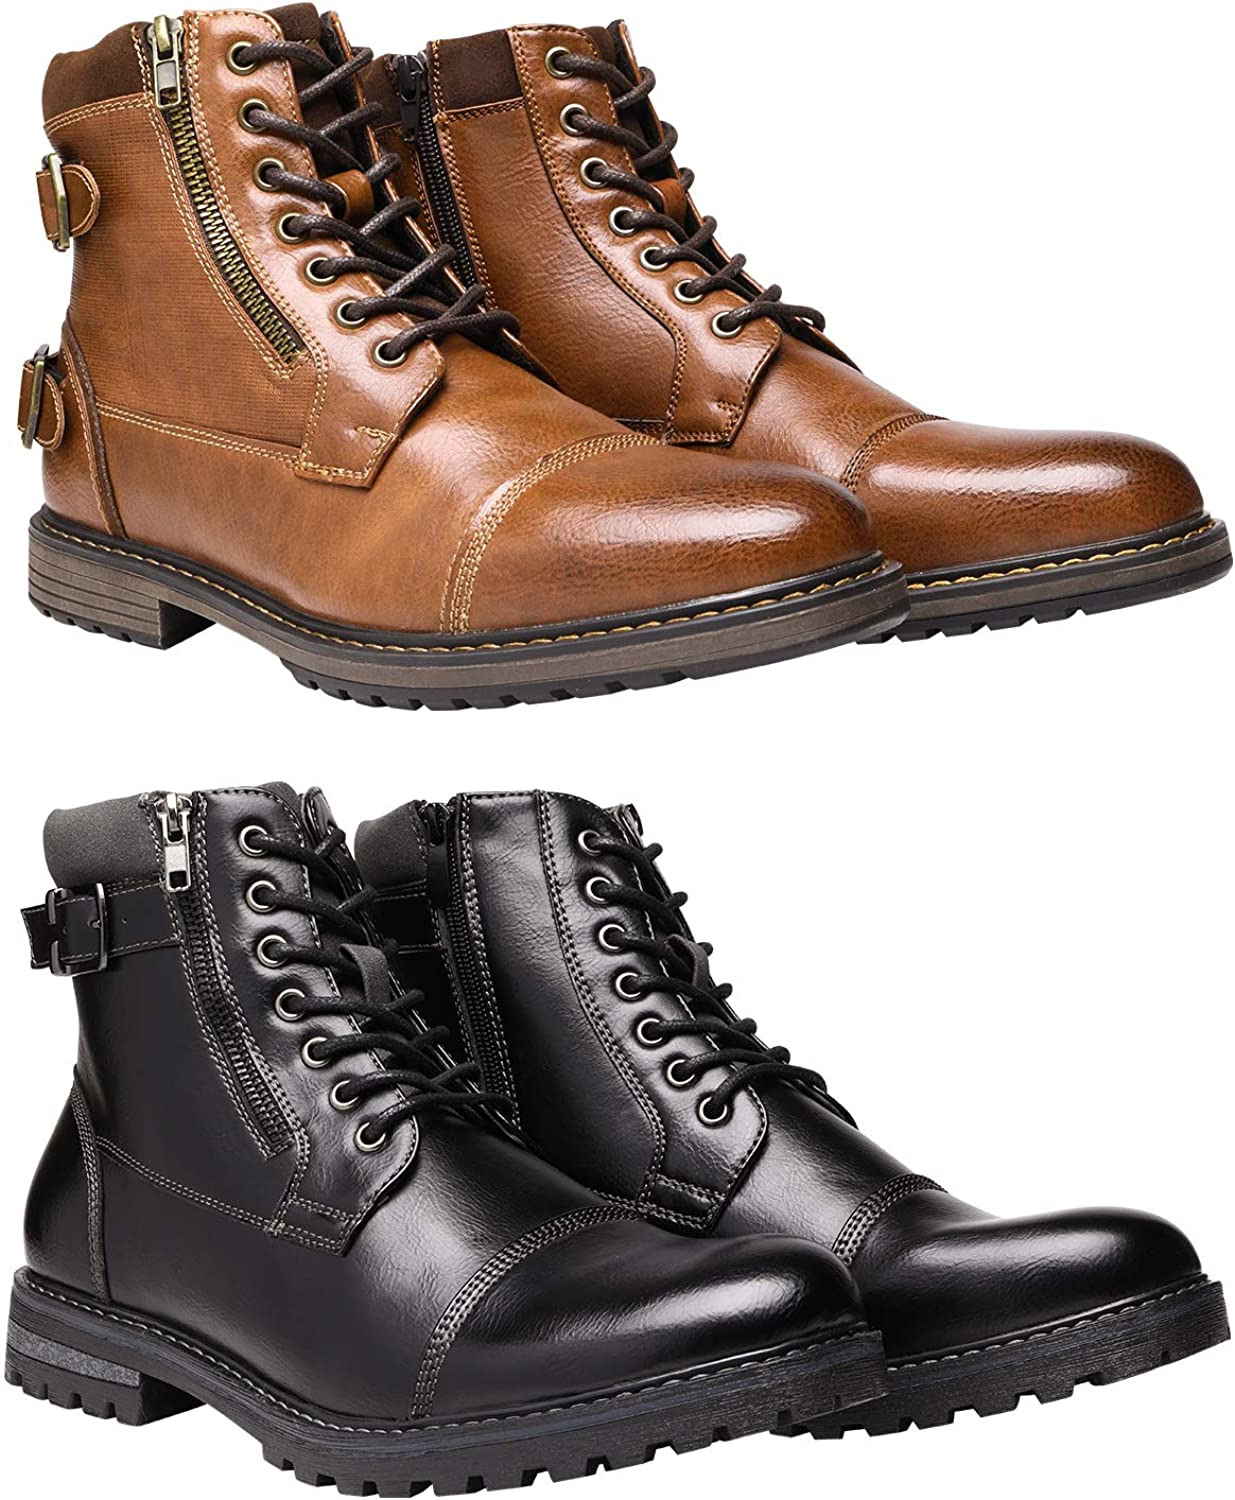 Bruno Marc Men's Motorcycle Boots Bundle with Men's Oxford Boots Size 11